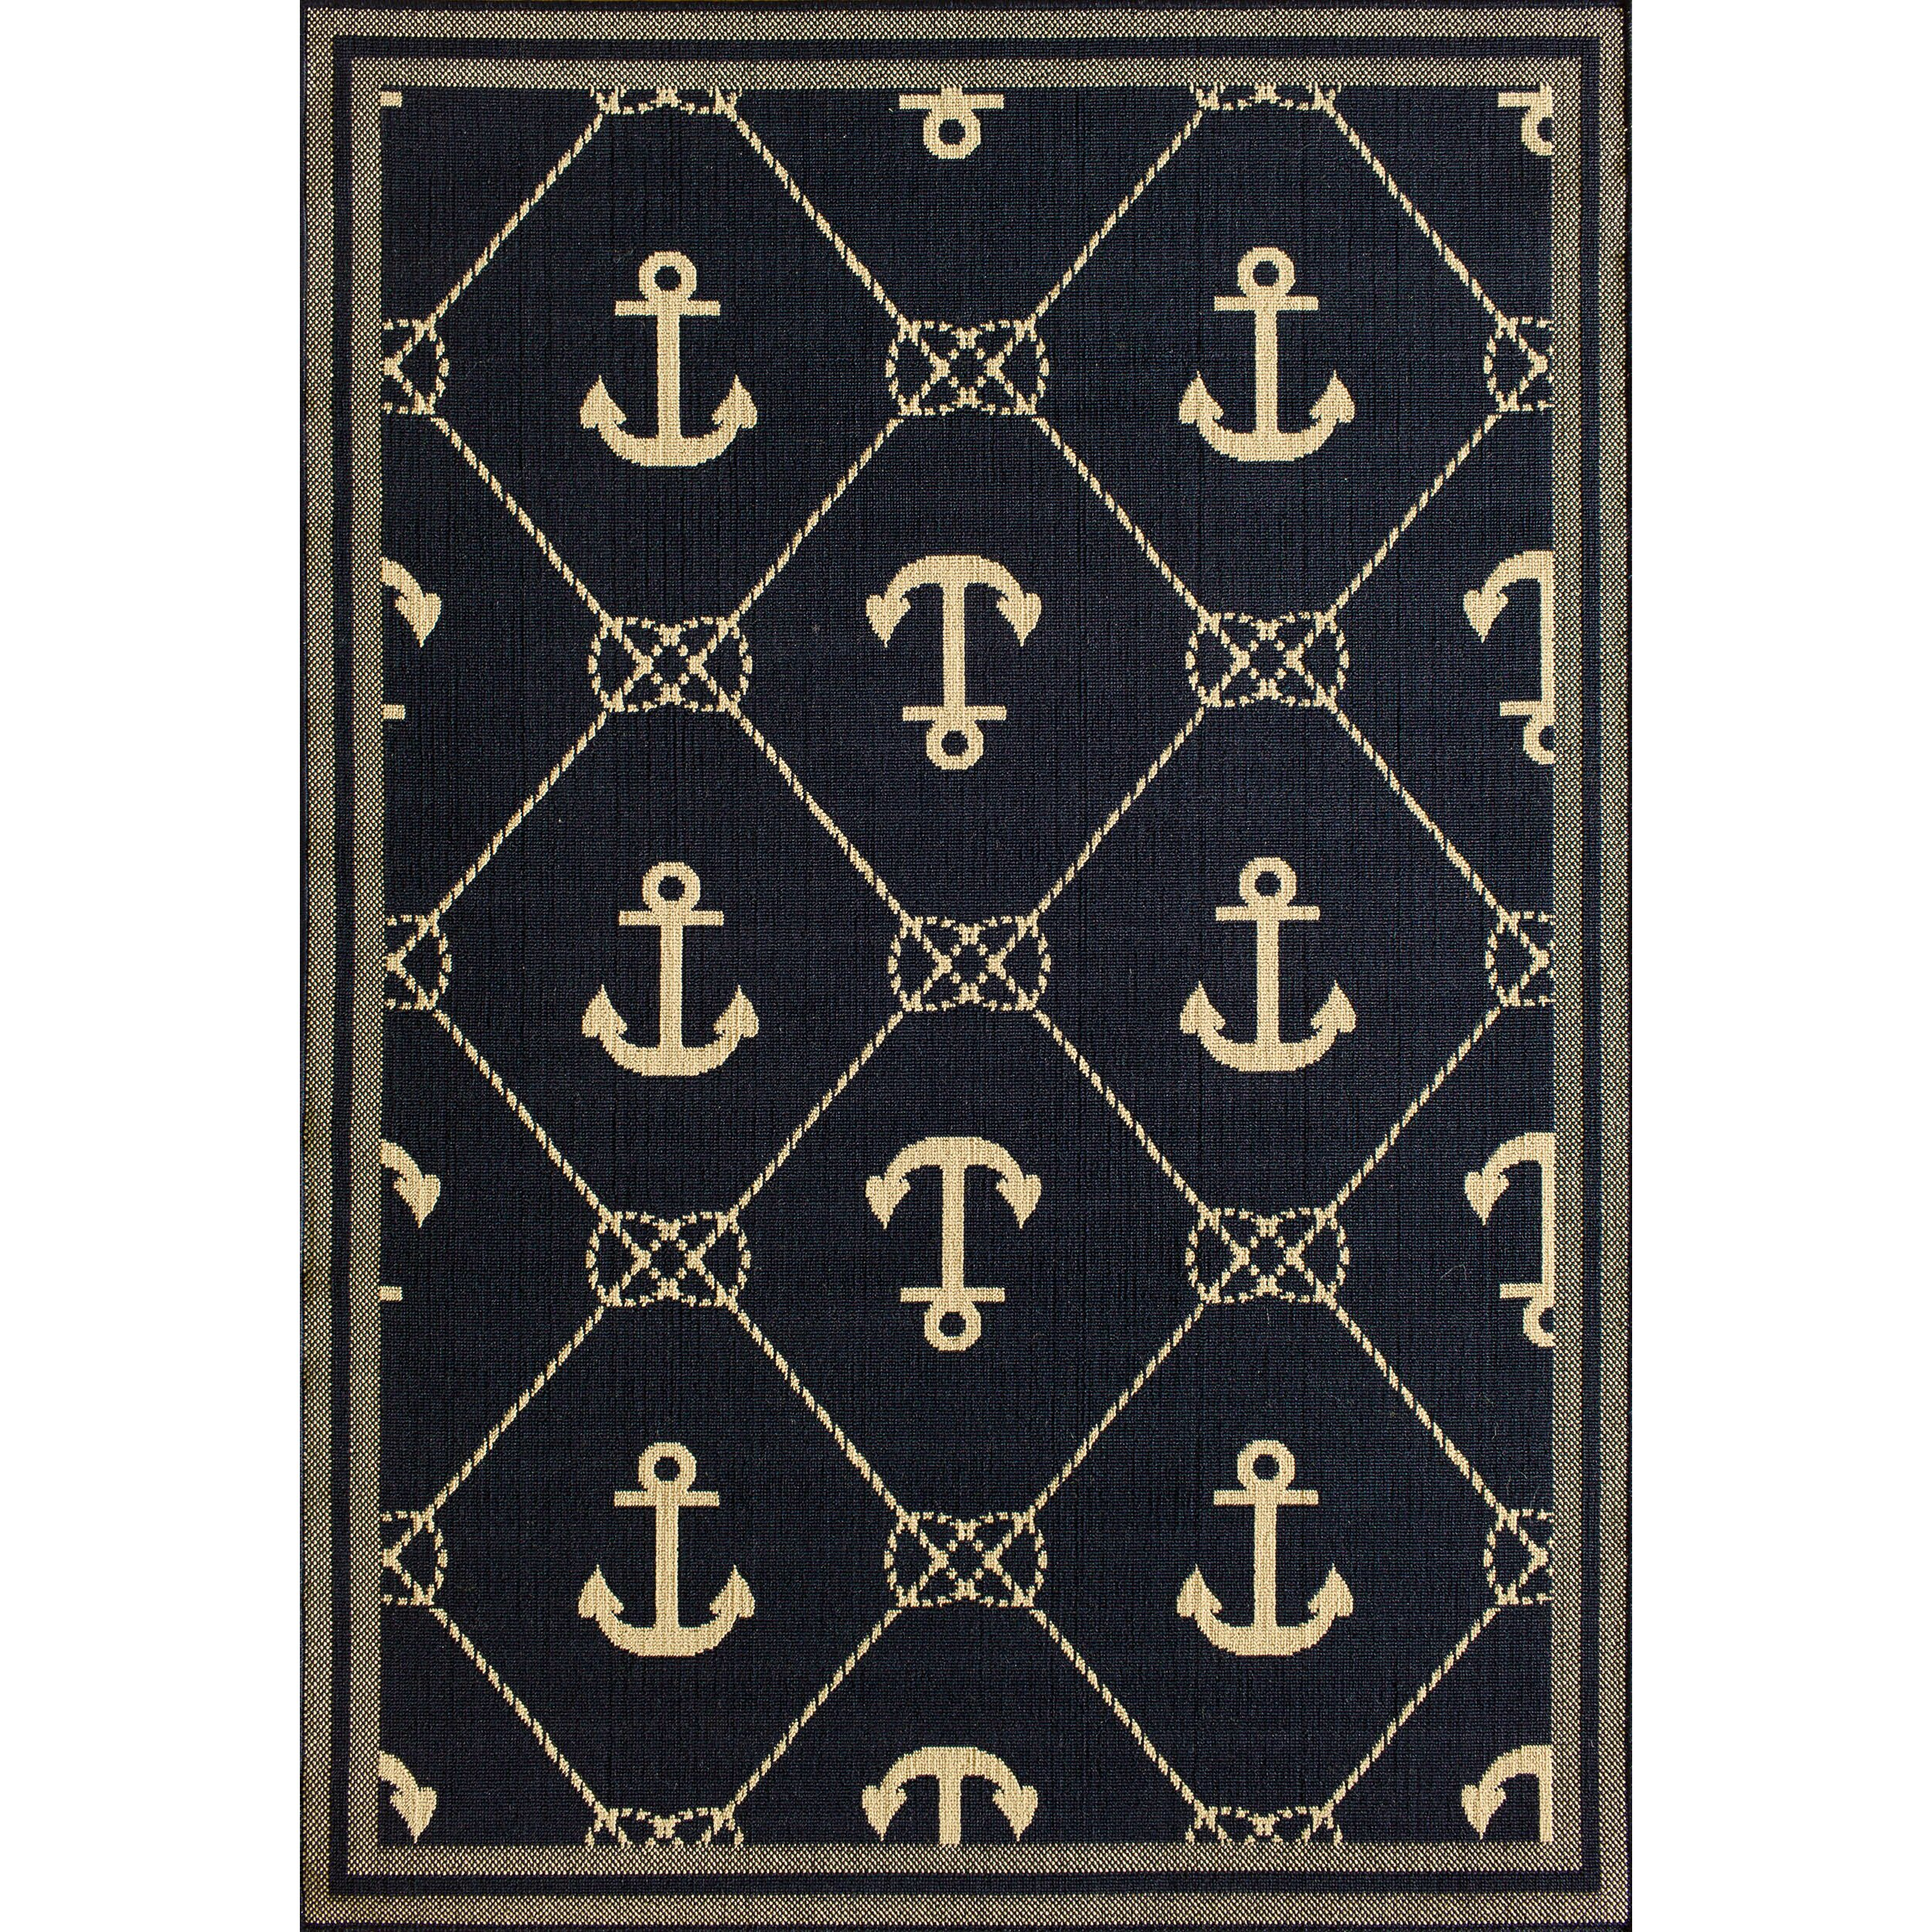 Popular Amer Rugs ST1P Marshall Platinum Area Rug  ATG Stores